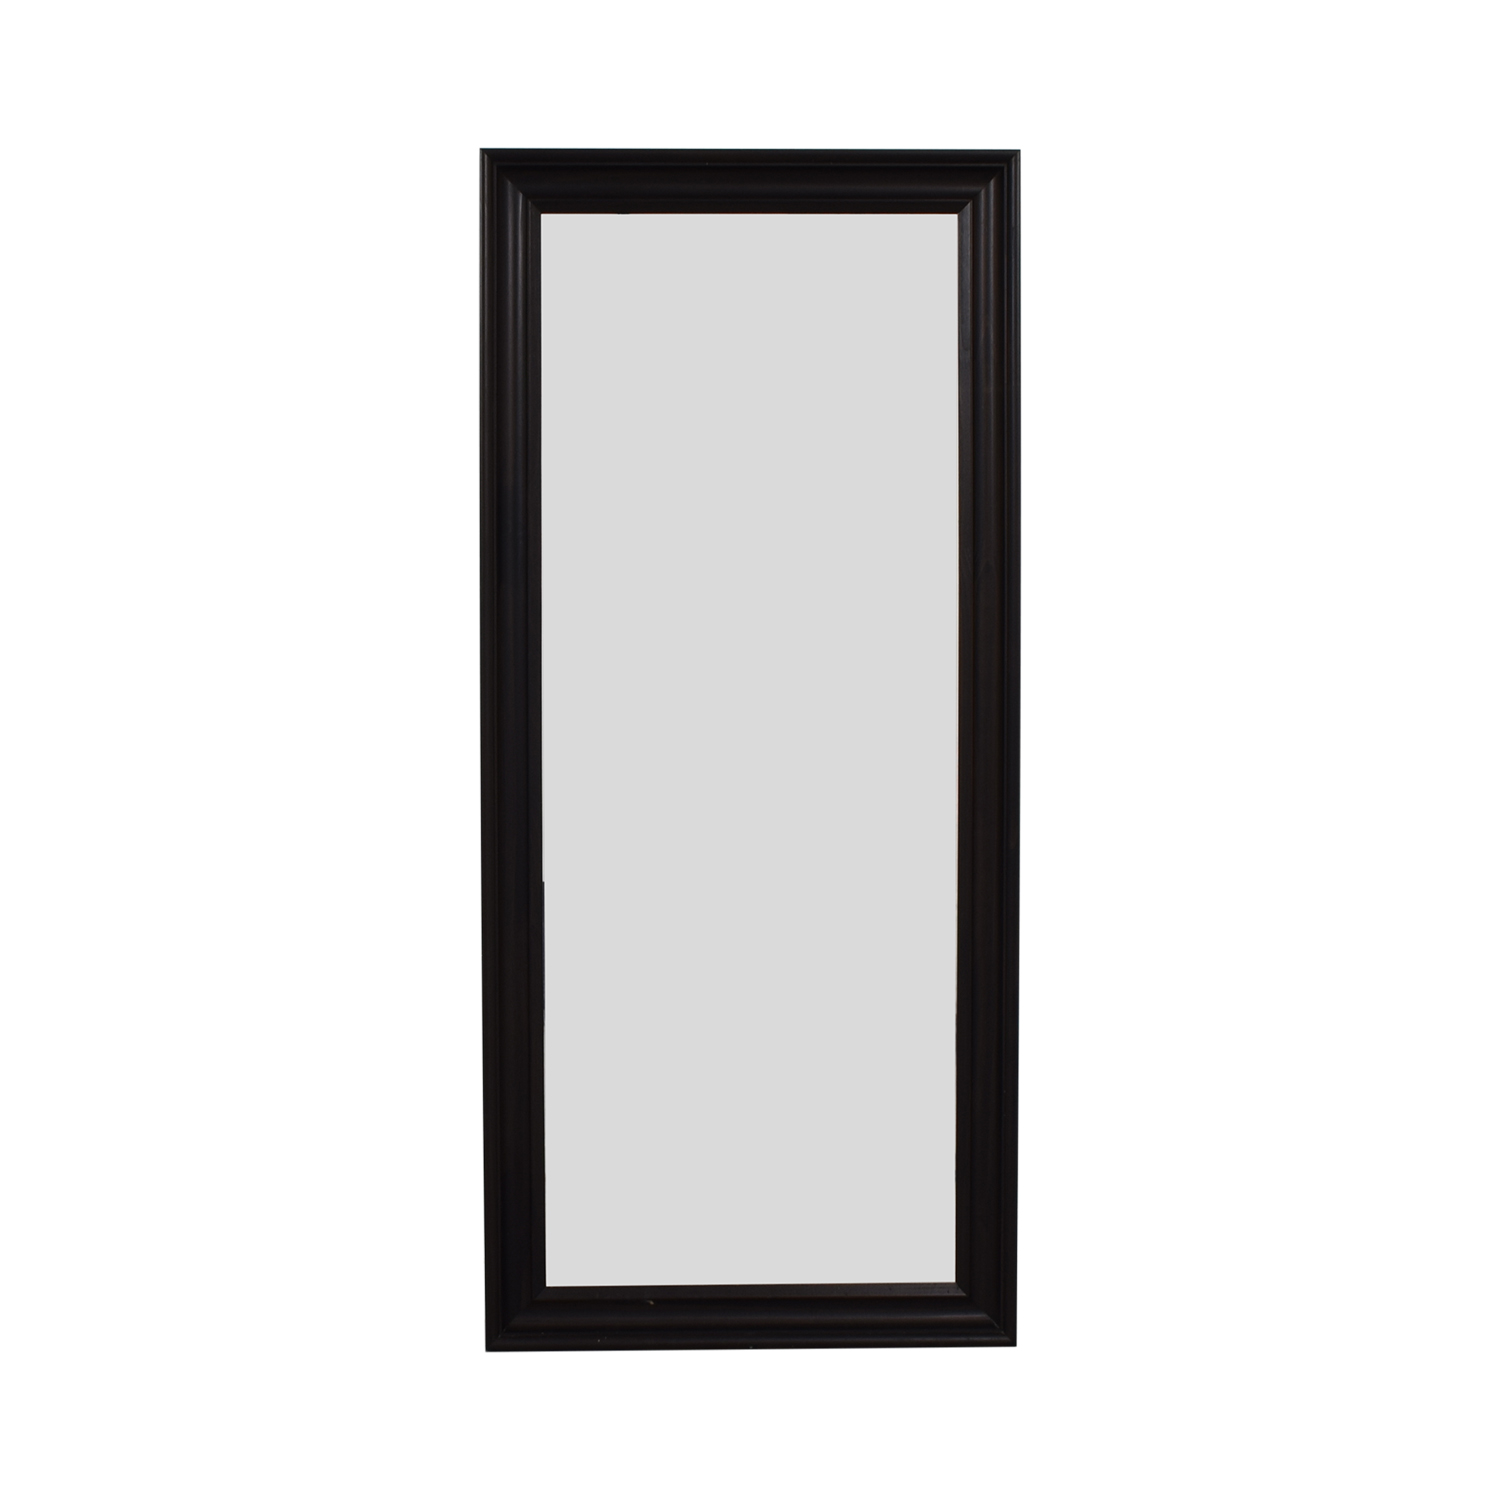 Ikea Ikea Hemnes Brown Framed Floor Mirror price